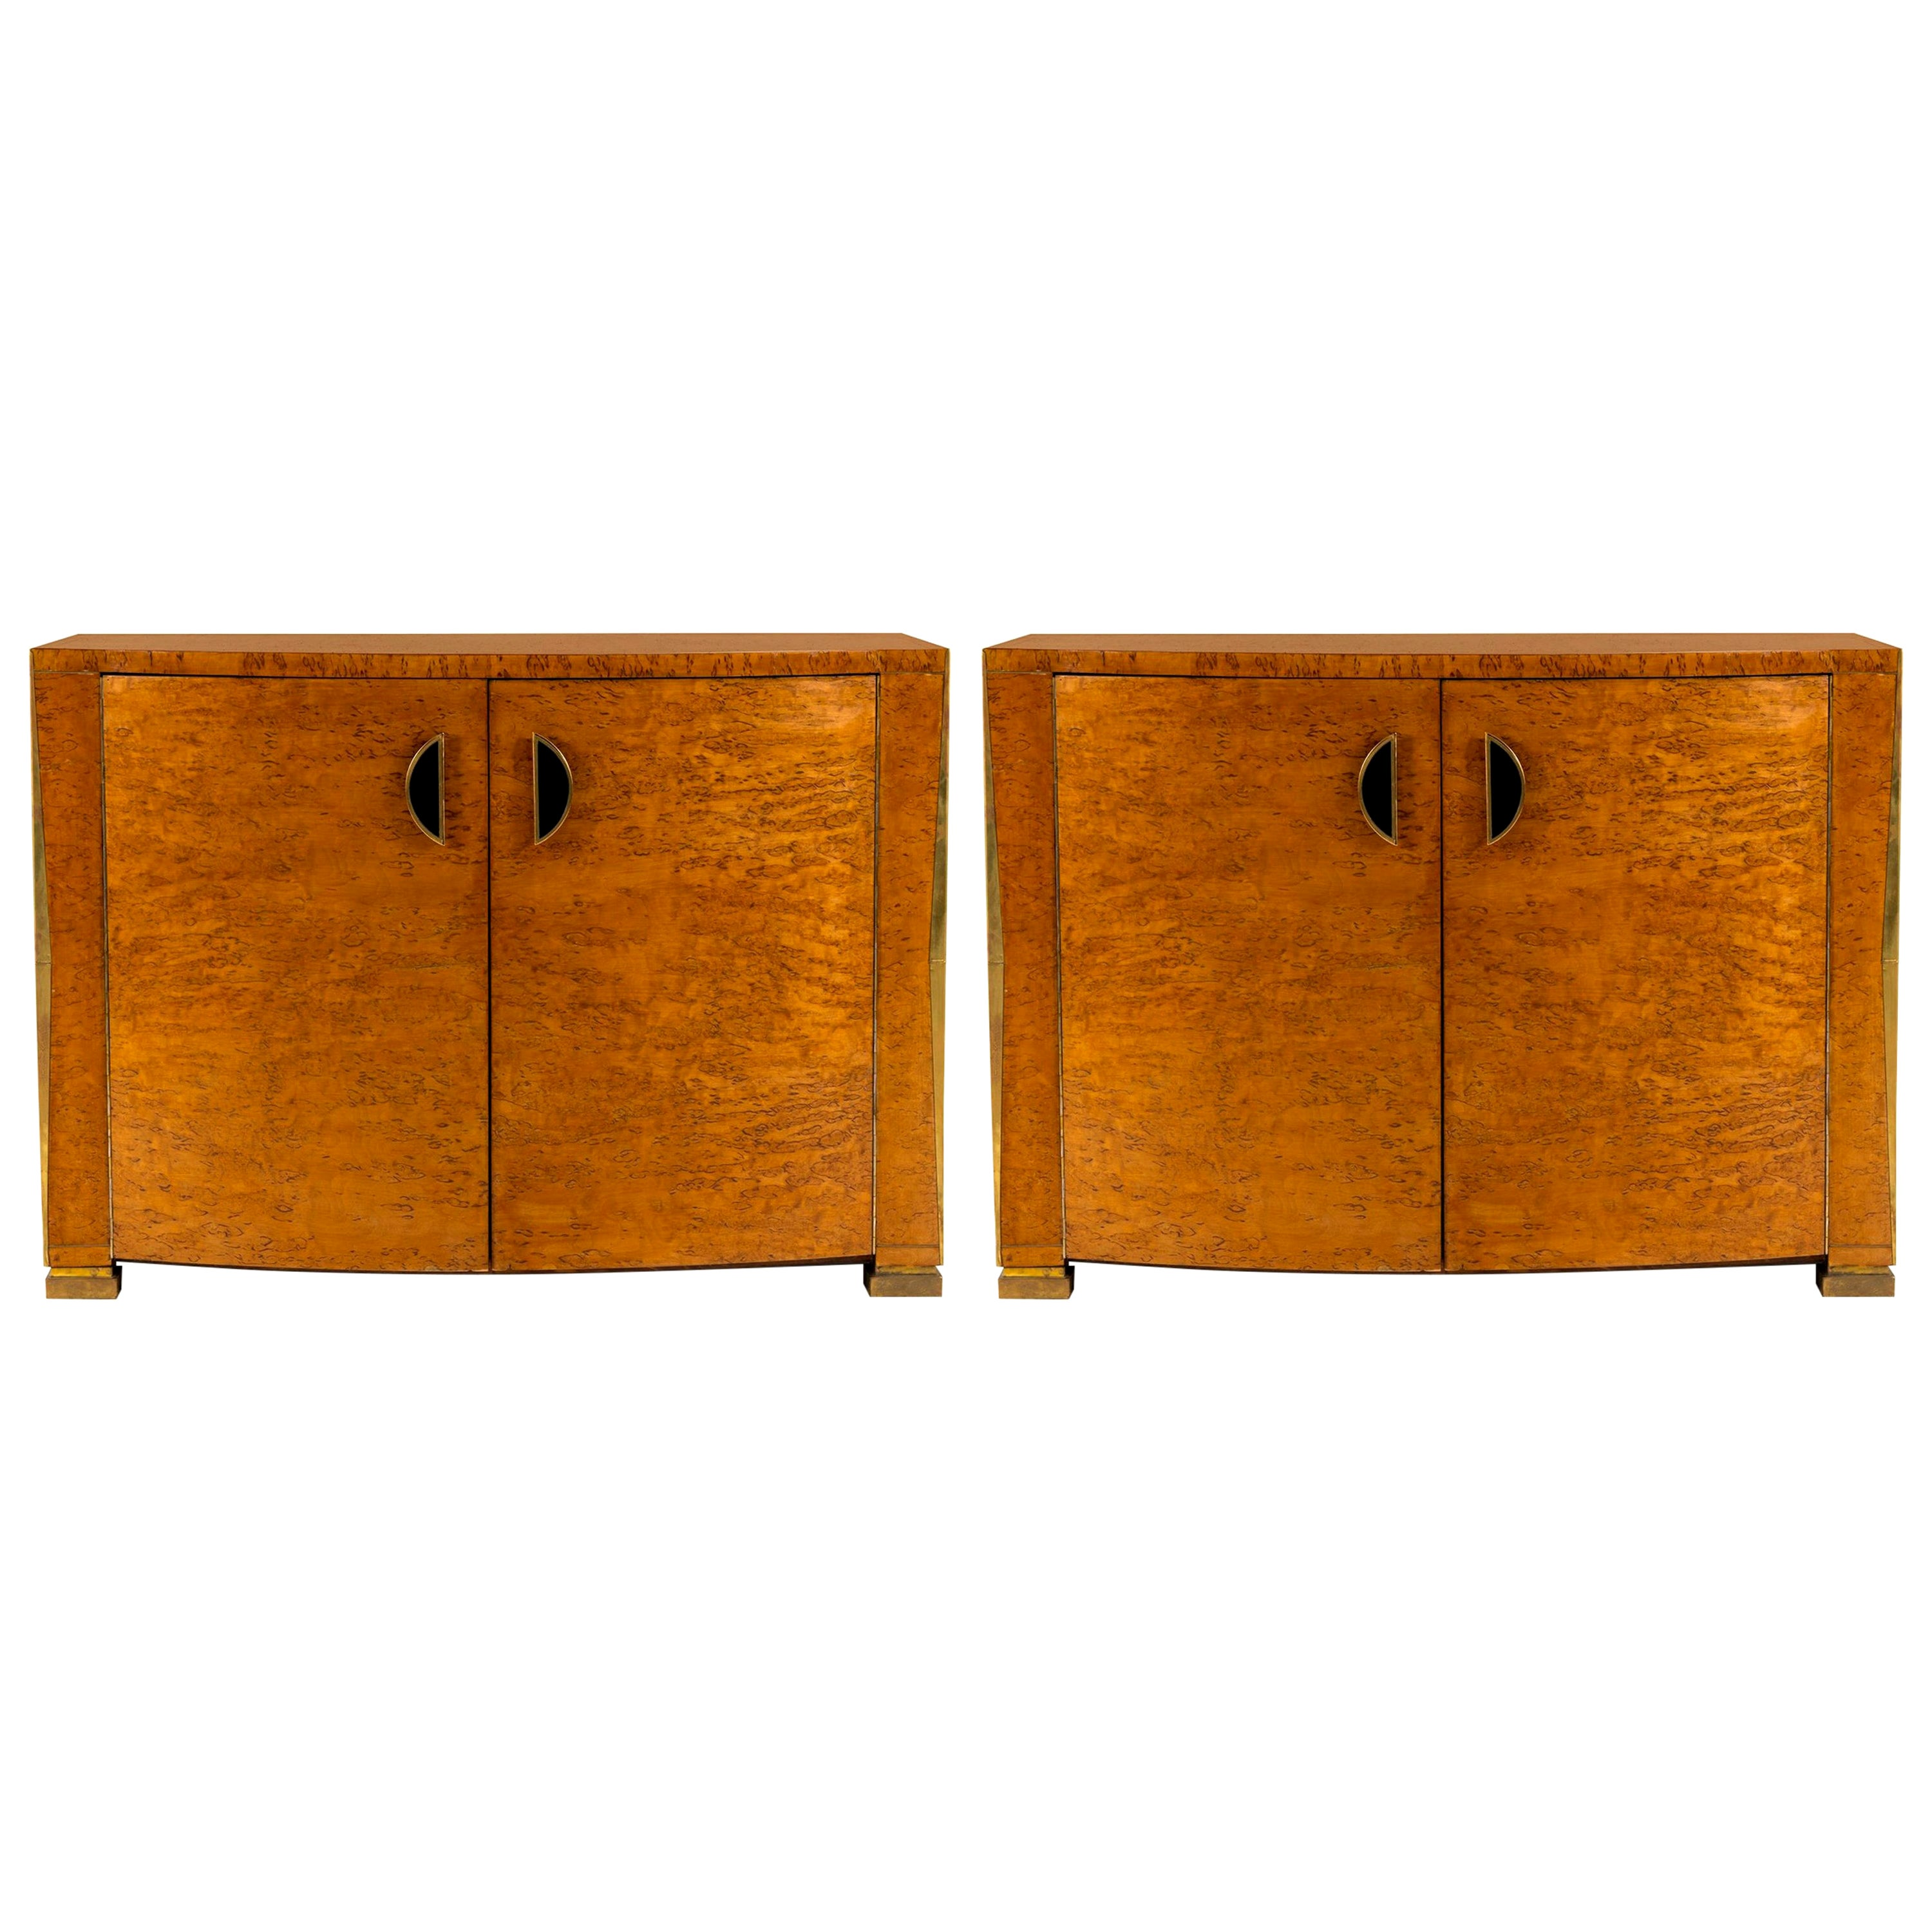 Pair of Art Deco Burl Wood Cabinets